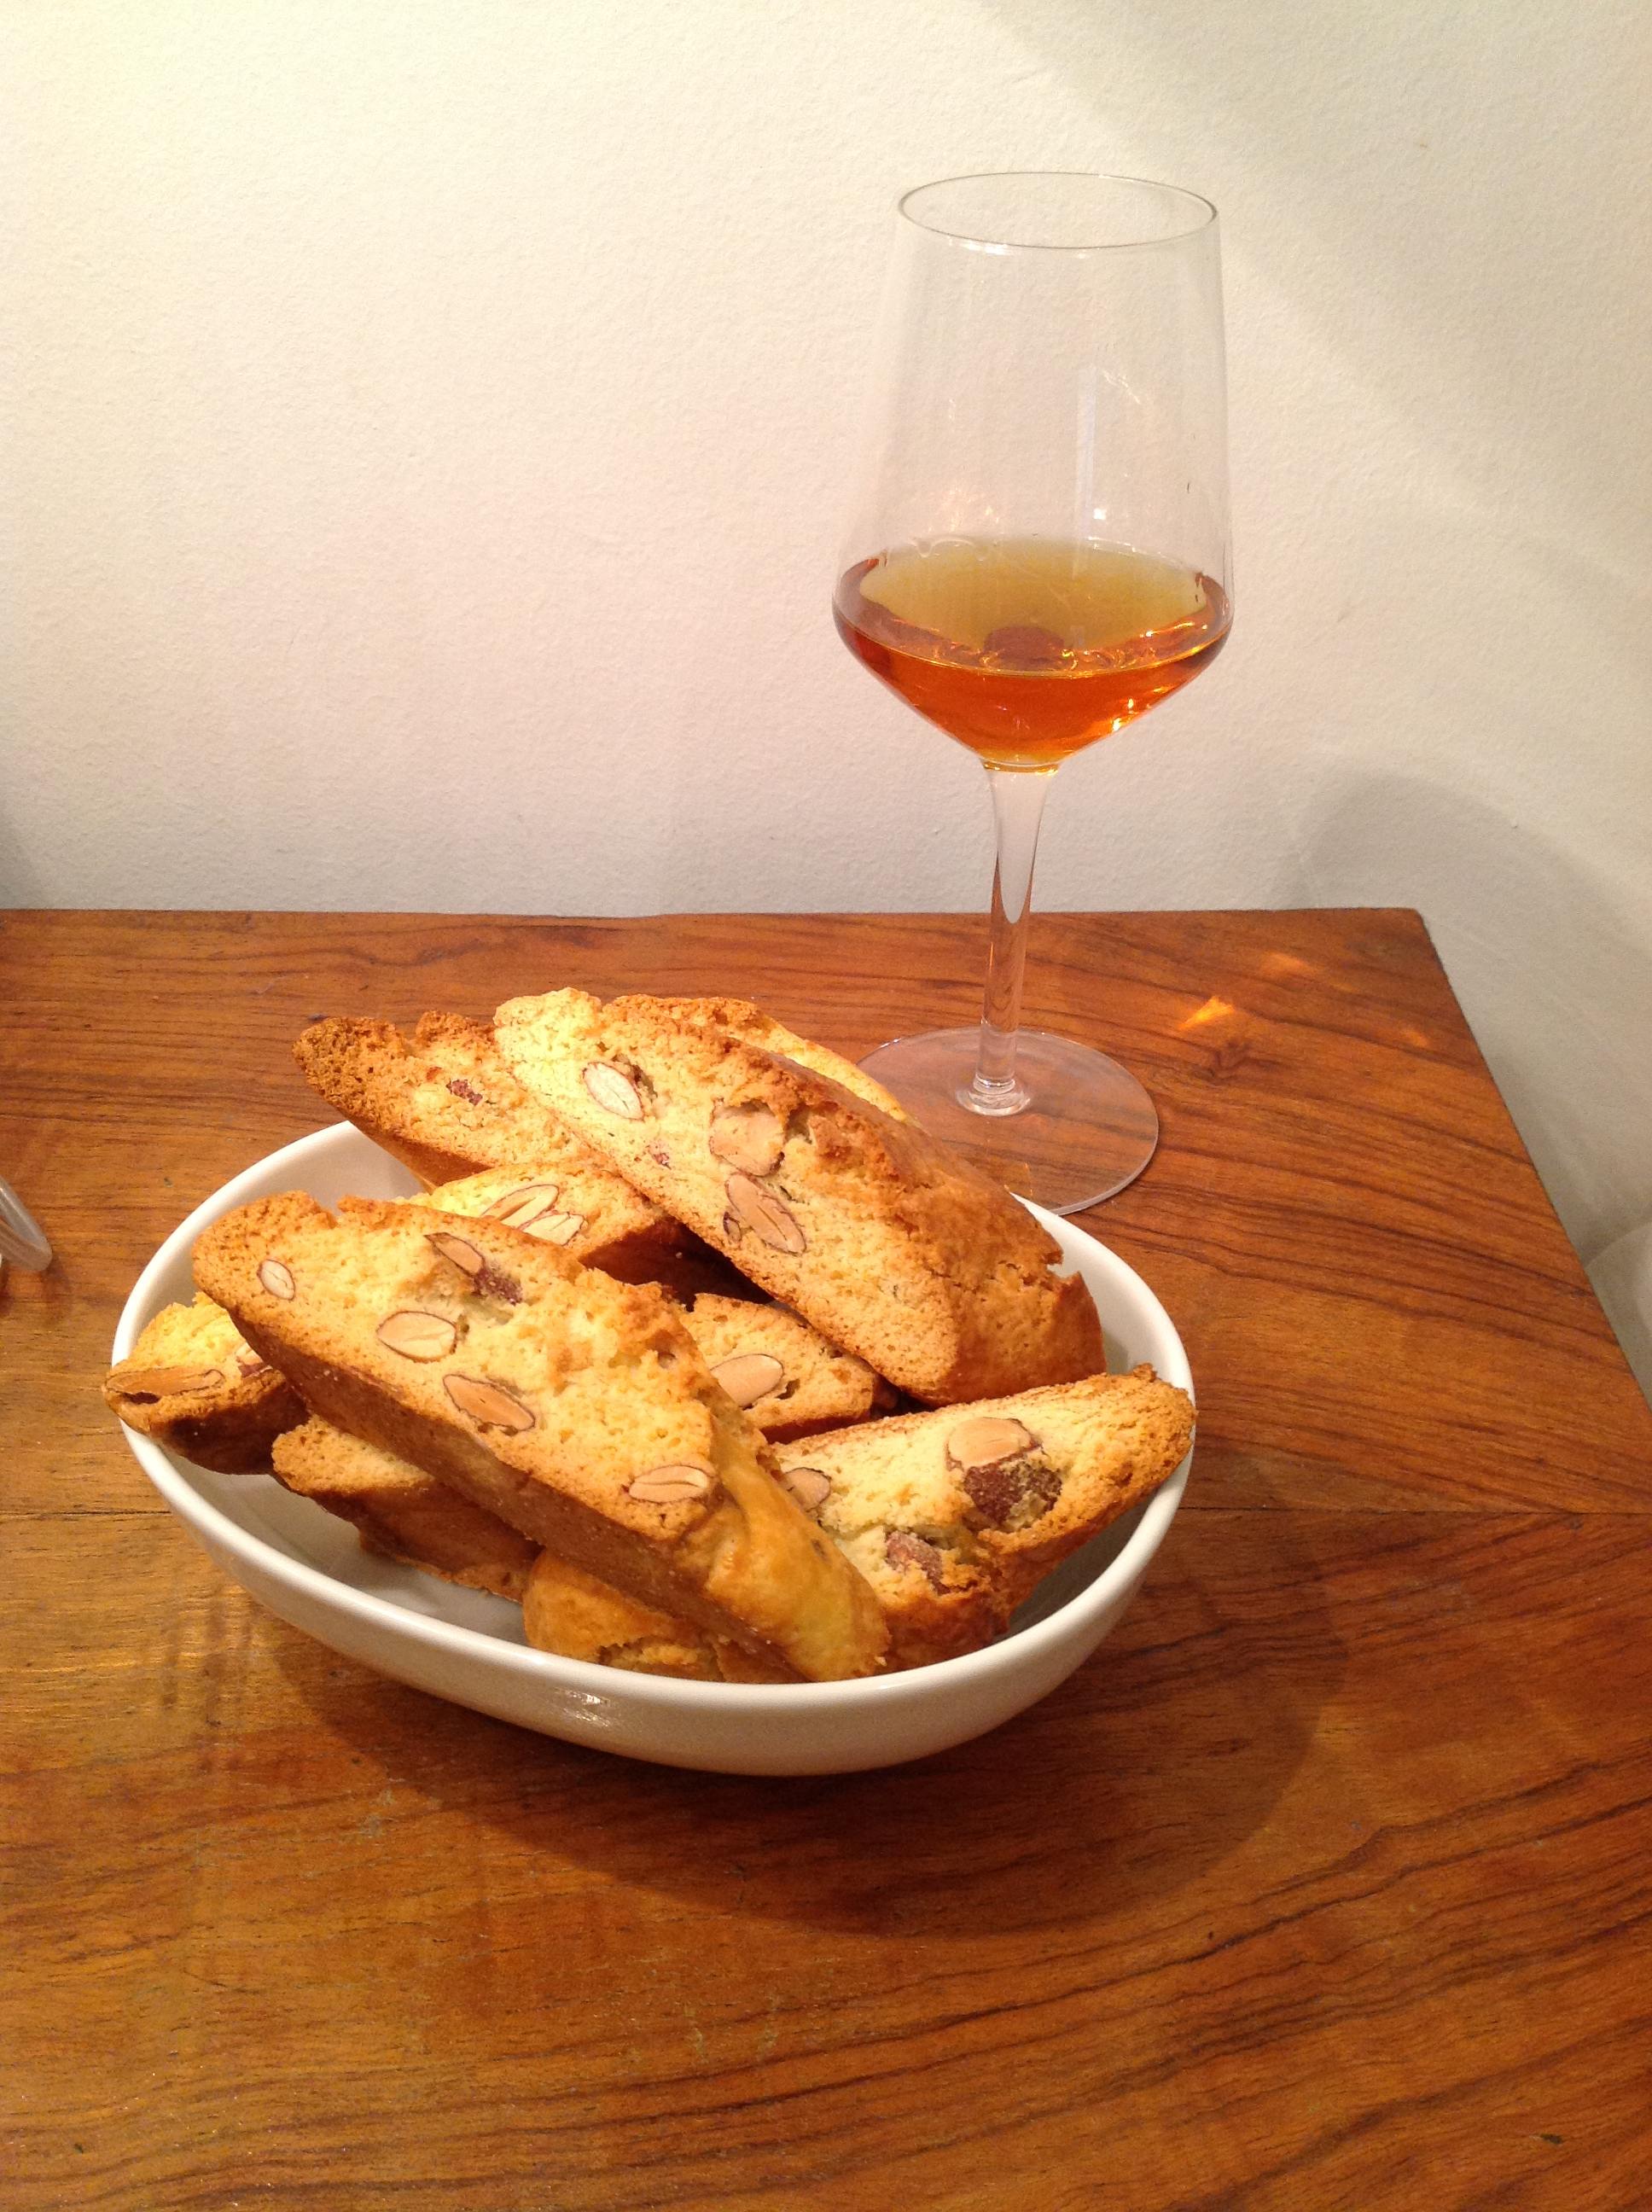 Cantucci with Vinsanto